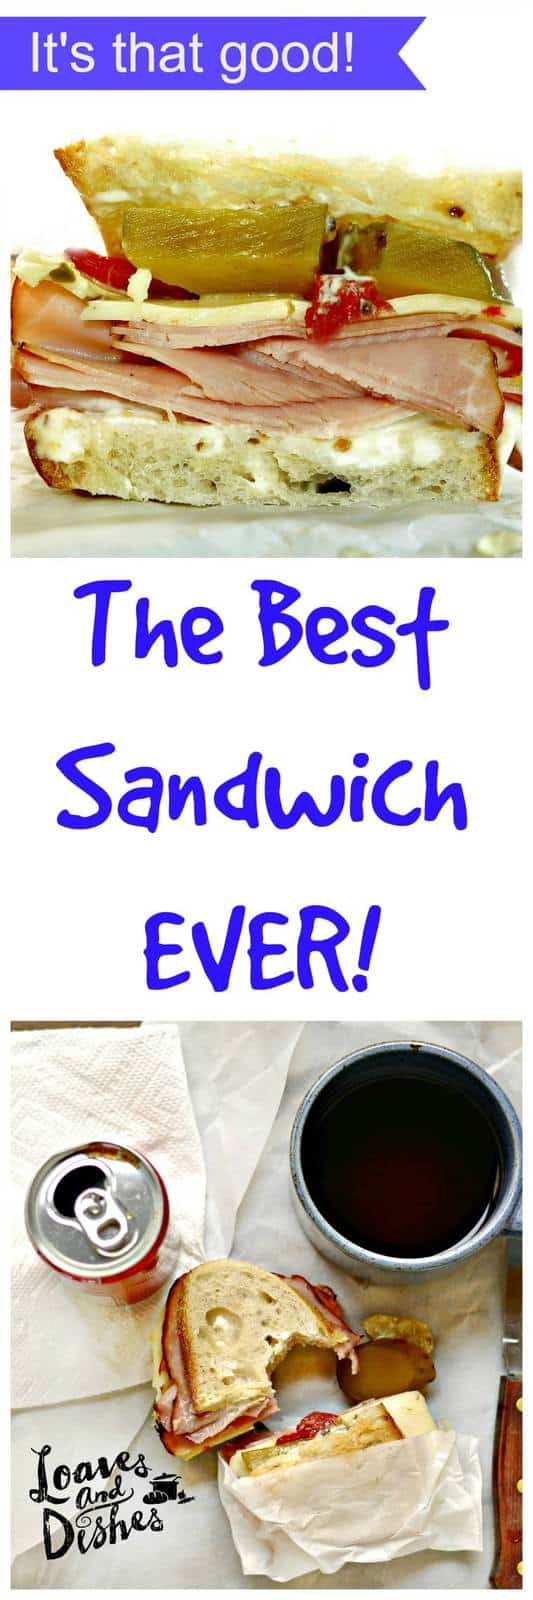 The Best Sandwich EVER